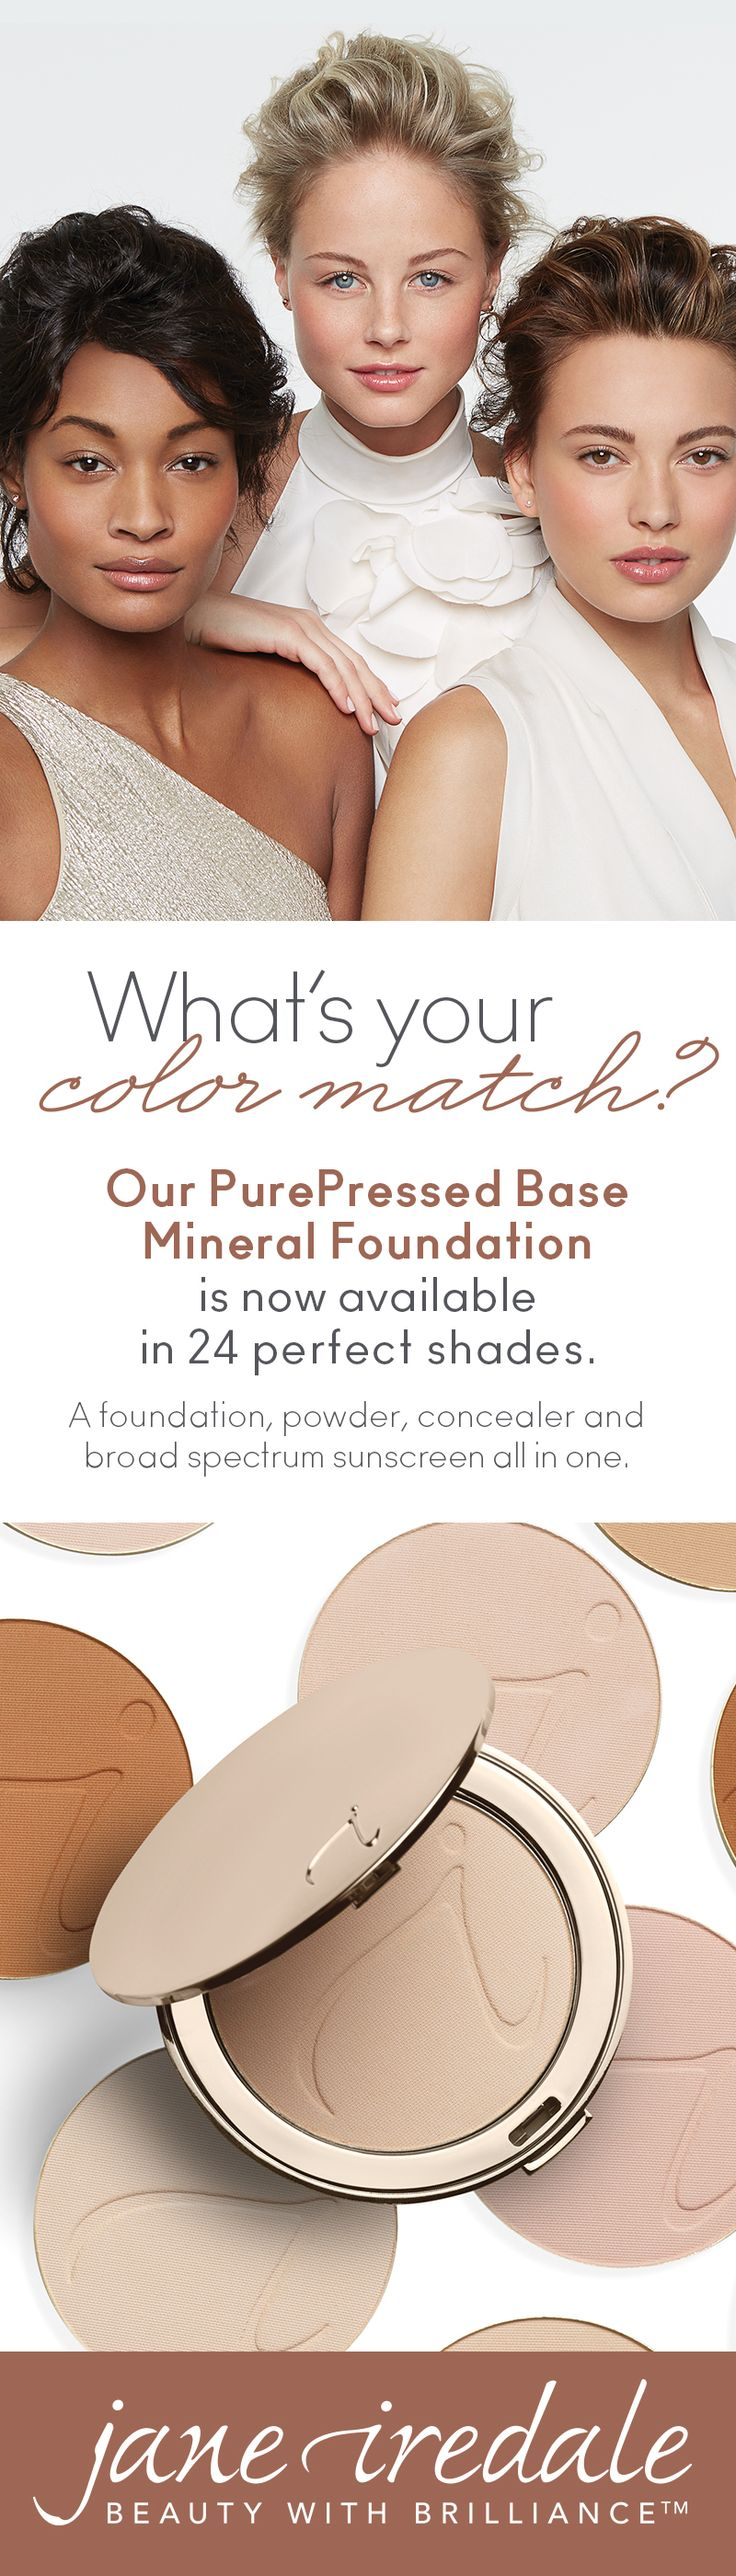 What's your color match? PurePressed® Base Mineral Foundation has you covered (literally). PurePressed® Base Mineral Foundation now comes in 24 shades of beautiful.